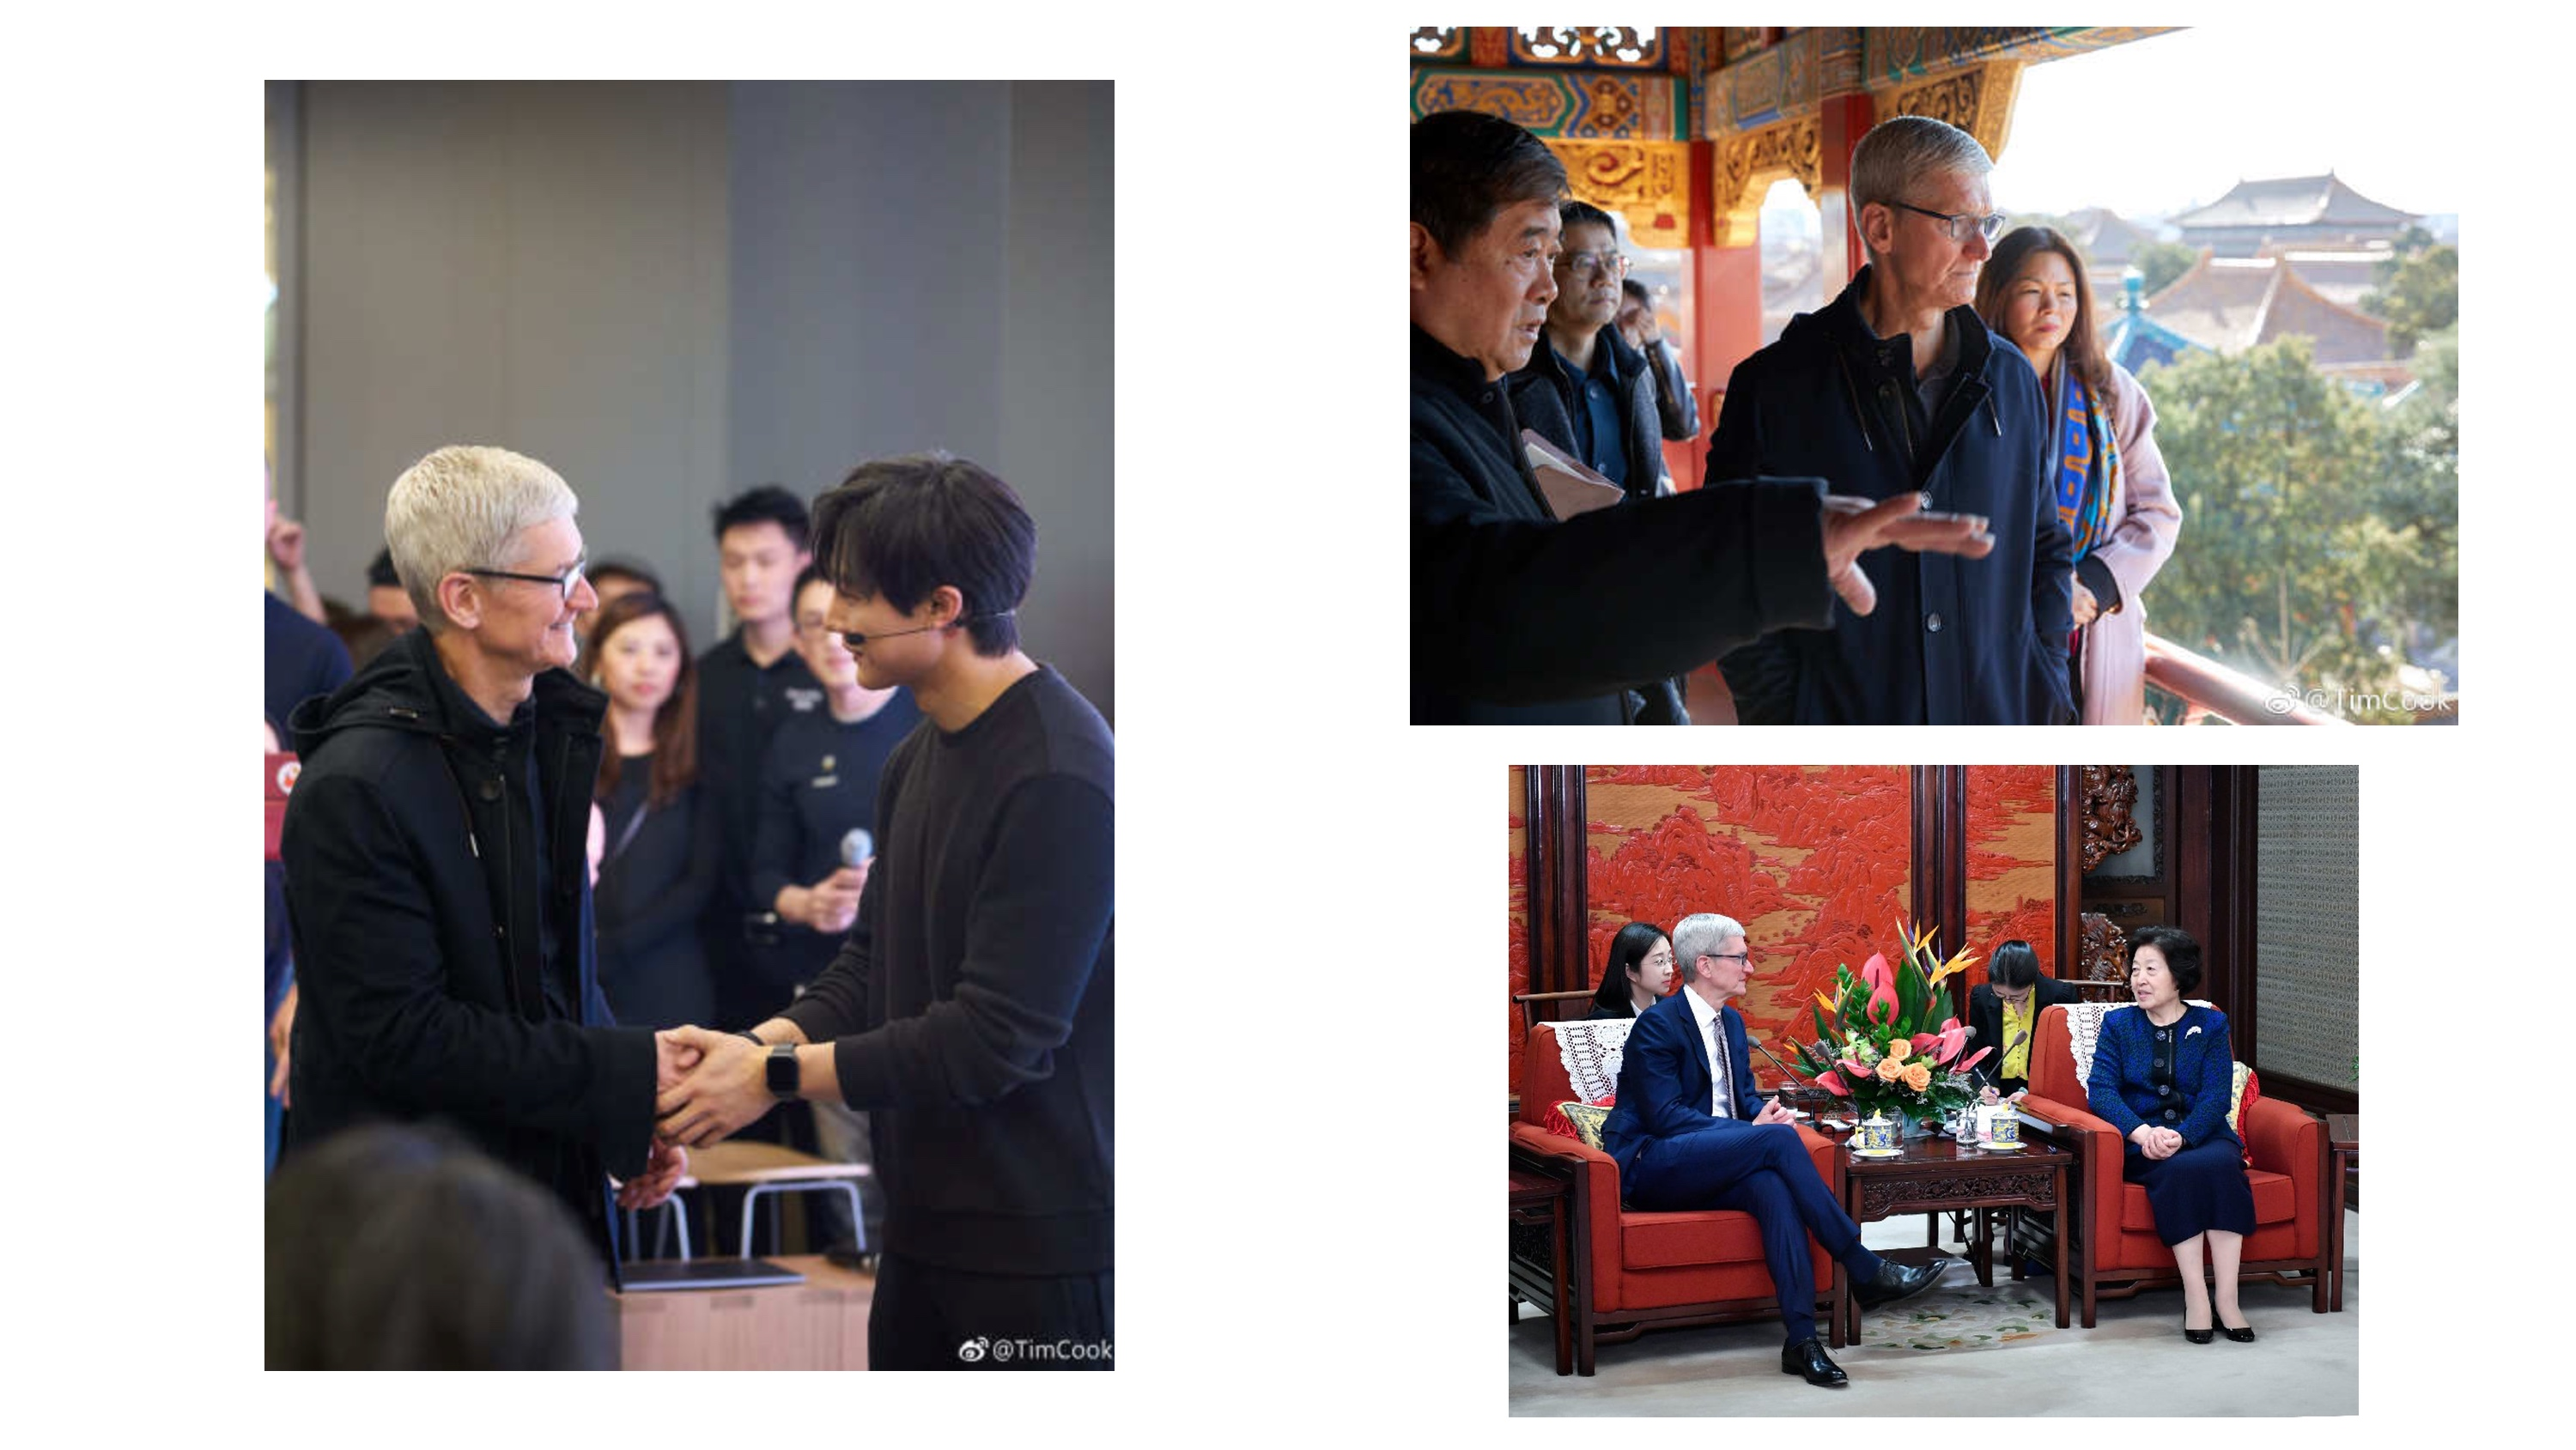 Tim Cook meeting developers in China ahead of 2019 Development Forum